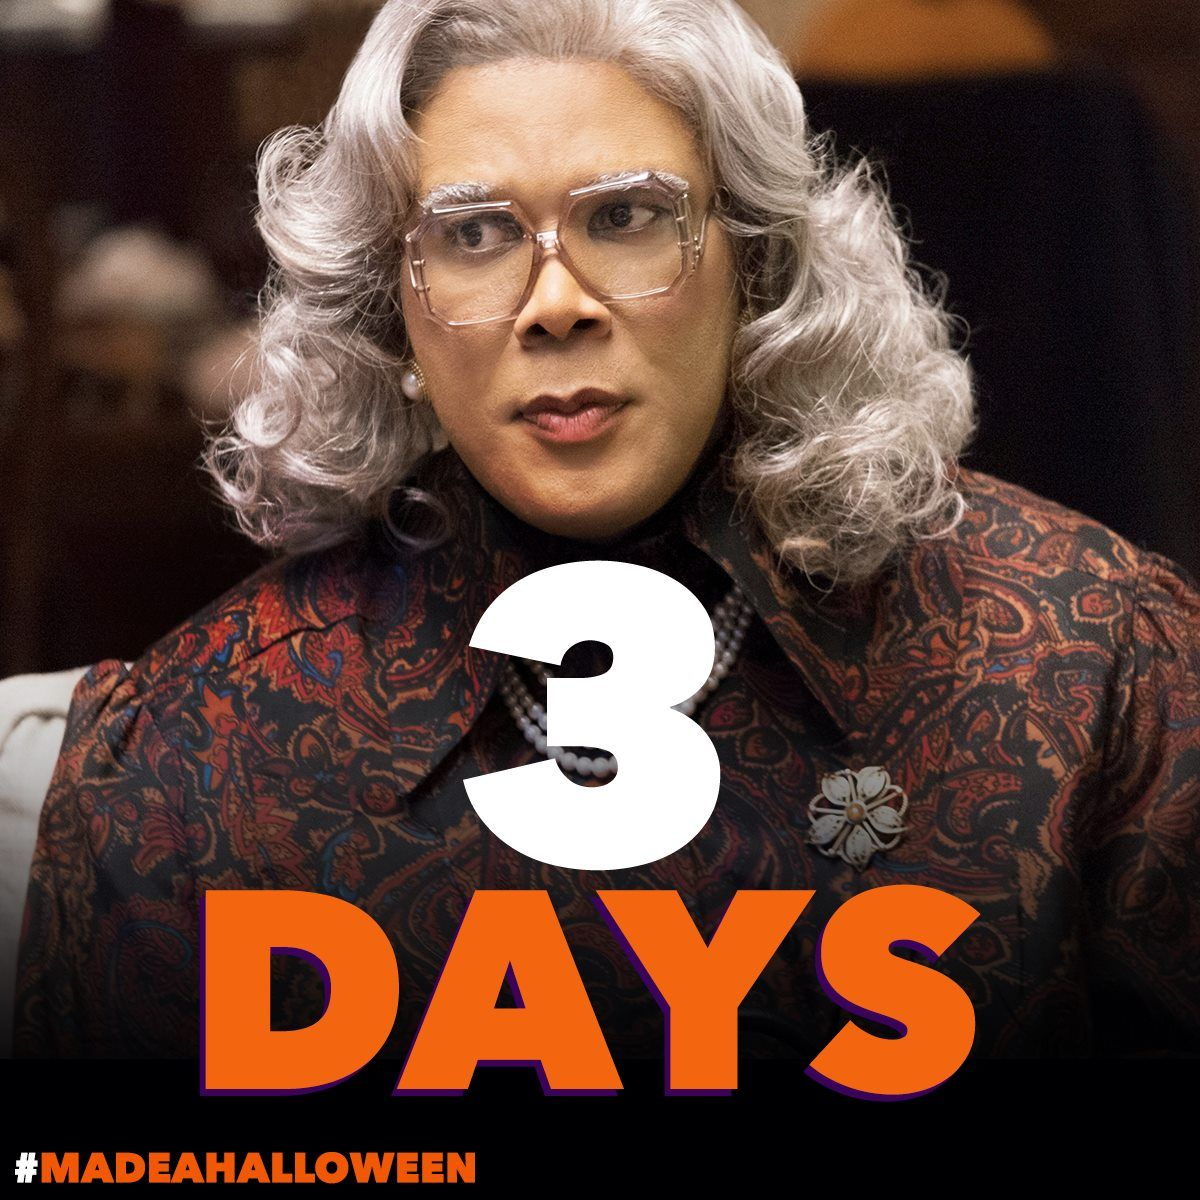 Boo! A MadeaHalloween arrives in 3 DAYS! Grab your